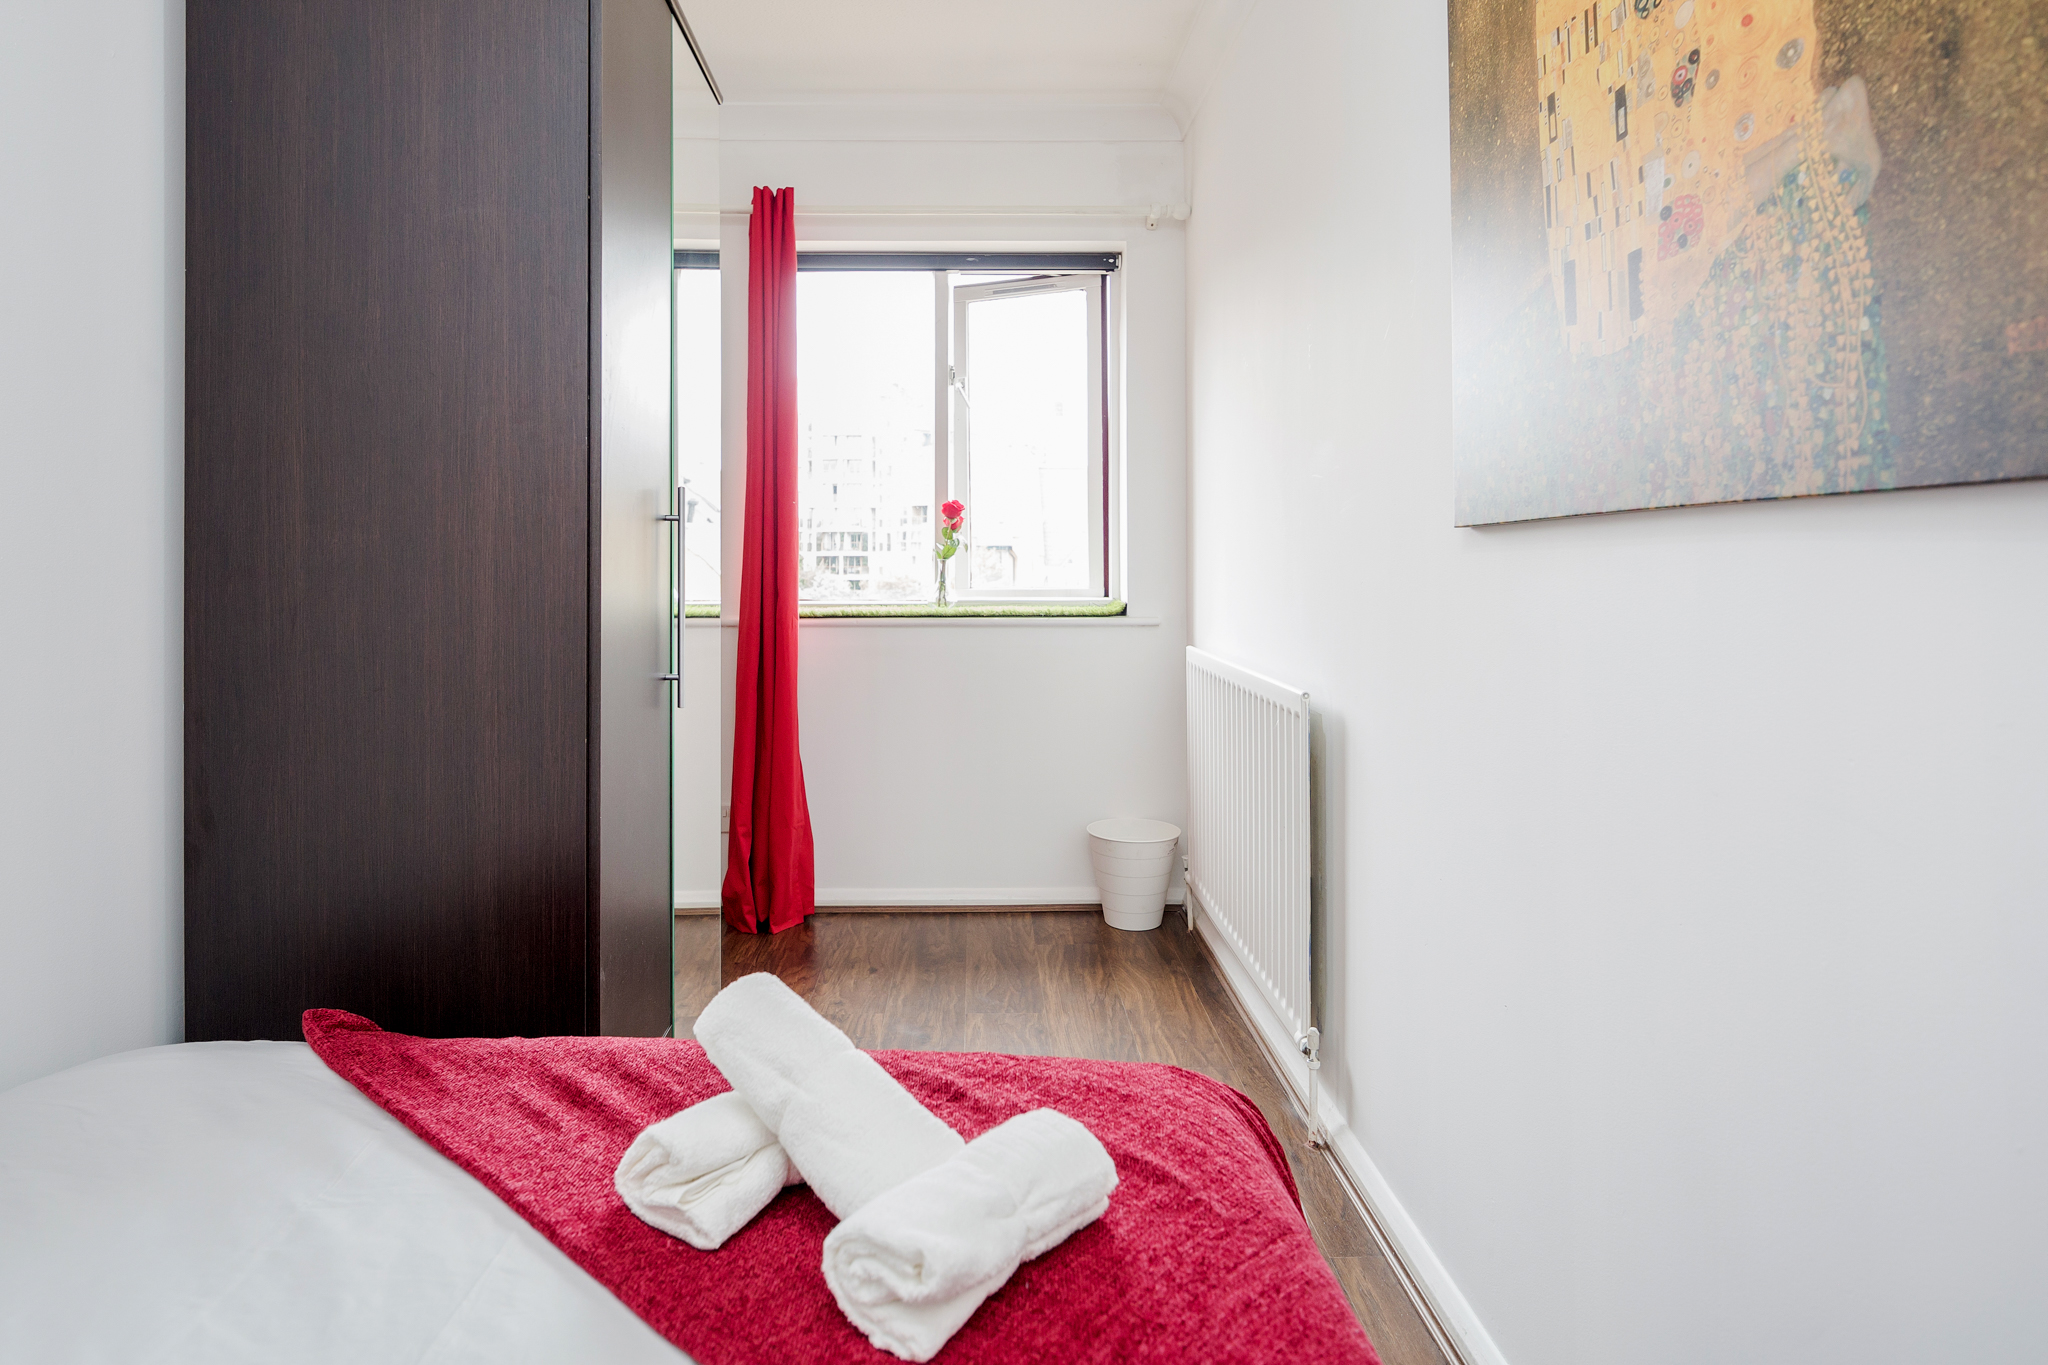 Double room 10 minutes walking from Tower Bridge - (Shared Bathroom) photo 16005074